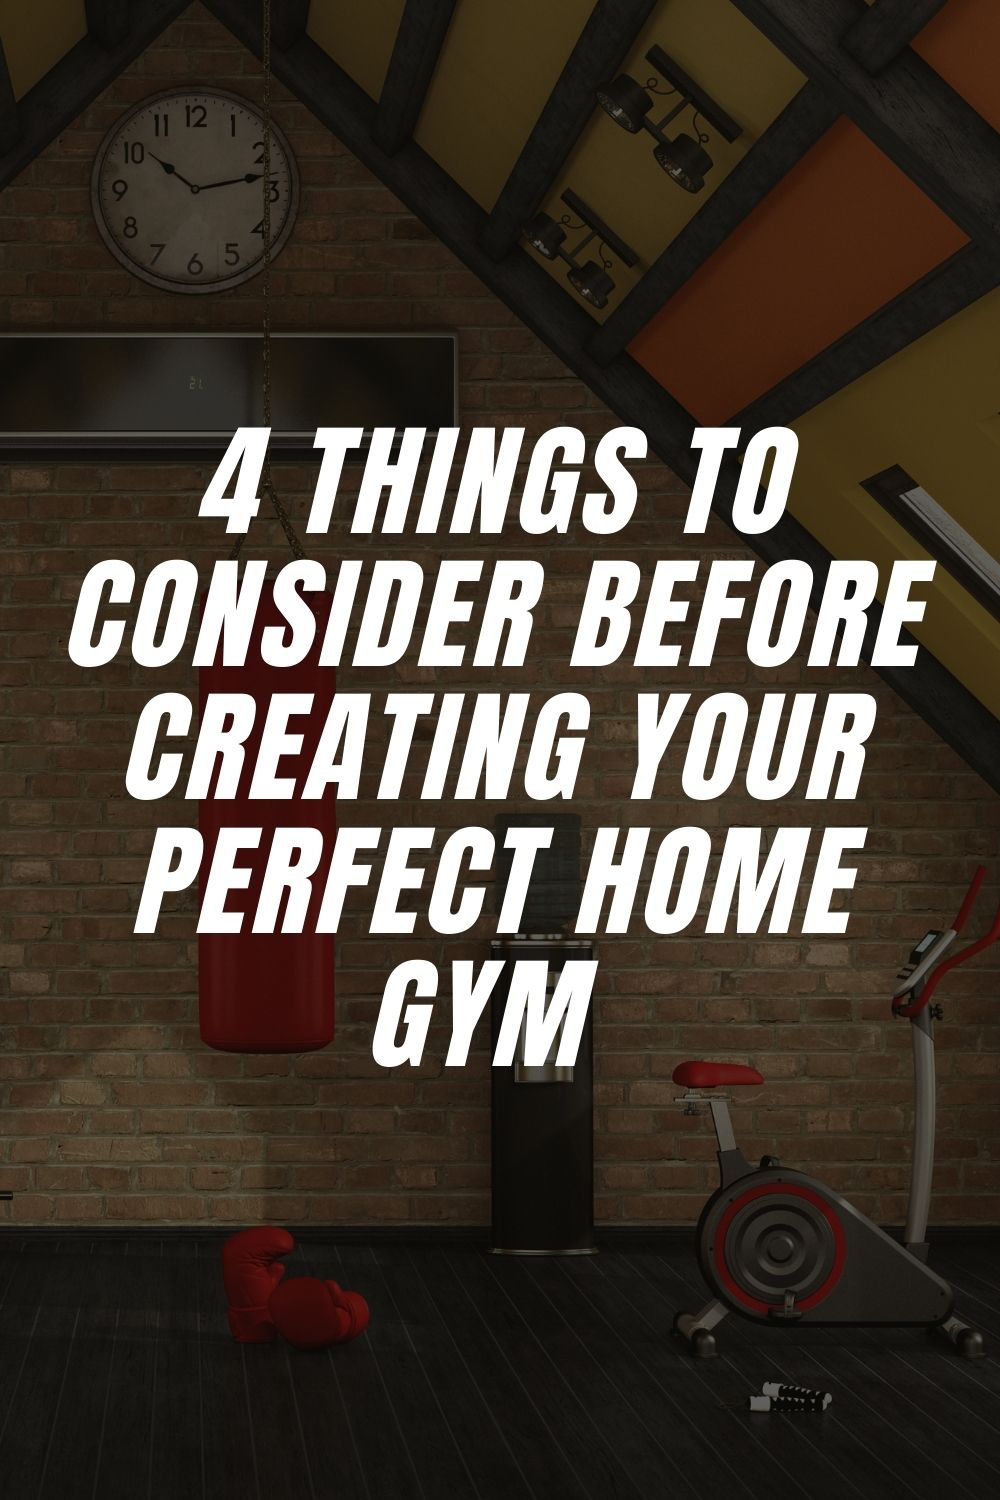 4 Things To Consider Before Creating Your Perfect Home Gym